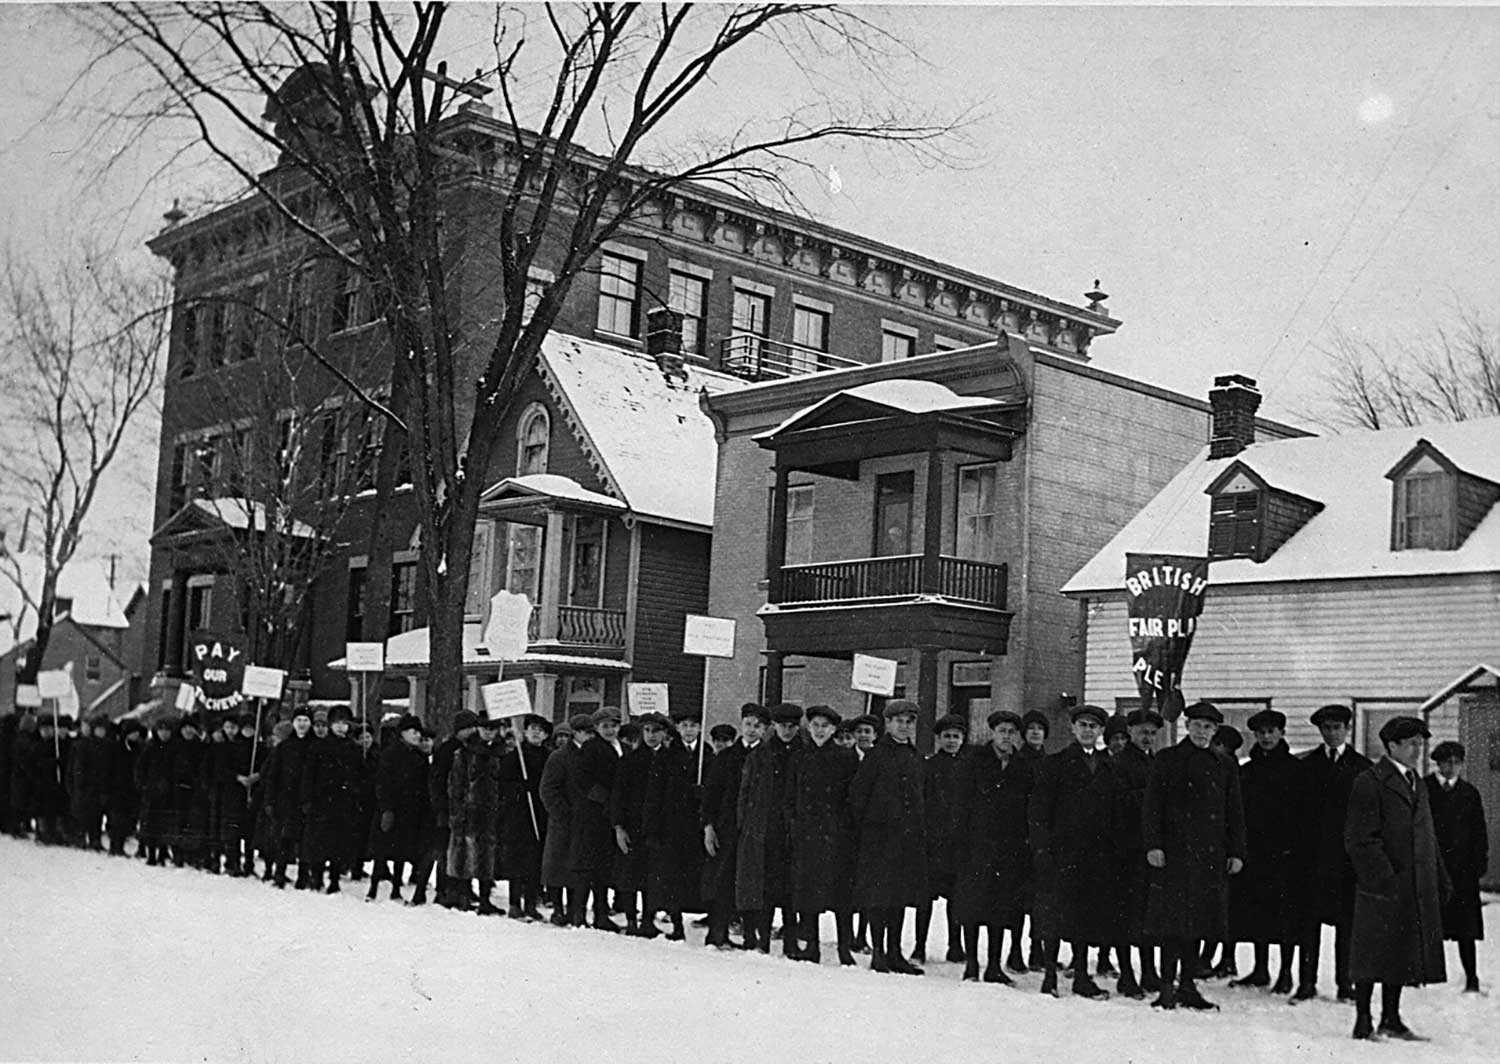 Students demonstrating against Regulation 17 outside Brébeuf School on Anglesea Square in Ottawa's Lowertown, in late January or early February, 1916 / [Le Droit, Ottawa]. University of Ottawa, Association canadienne-française de l'Ontario archive (C2), Ph2-142a.